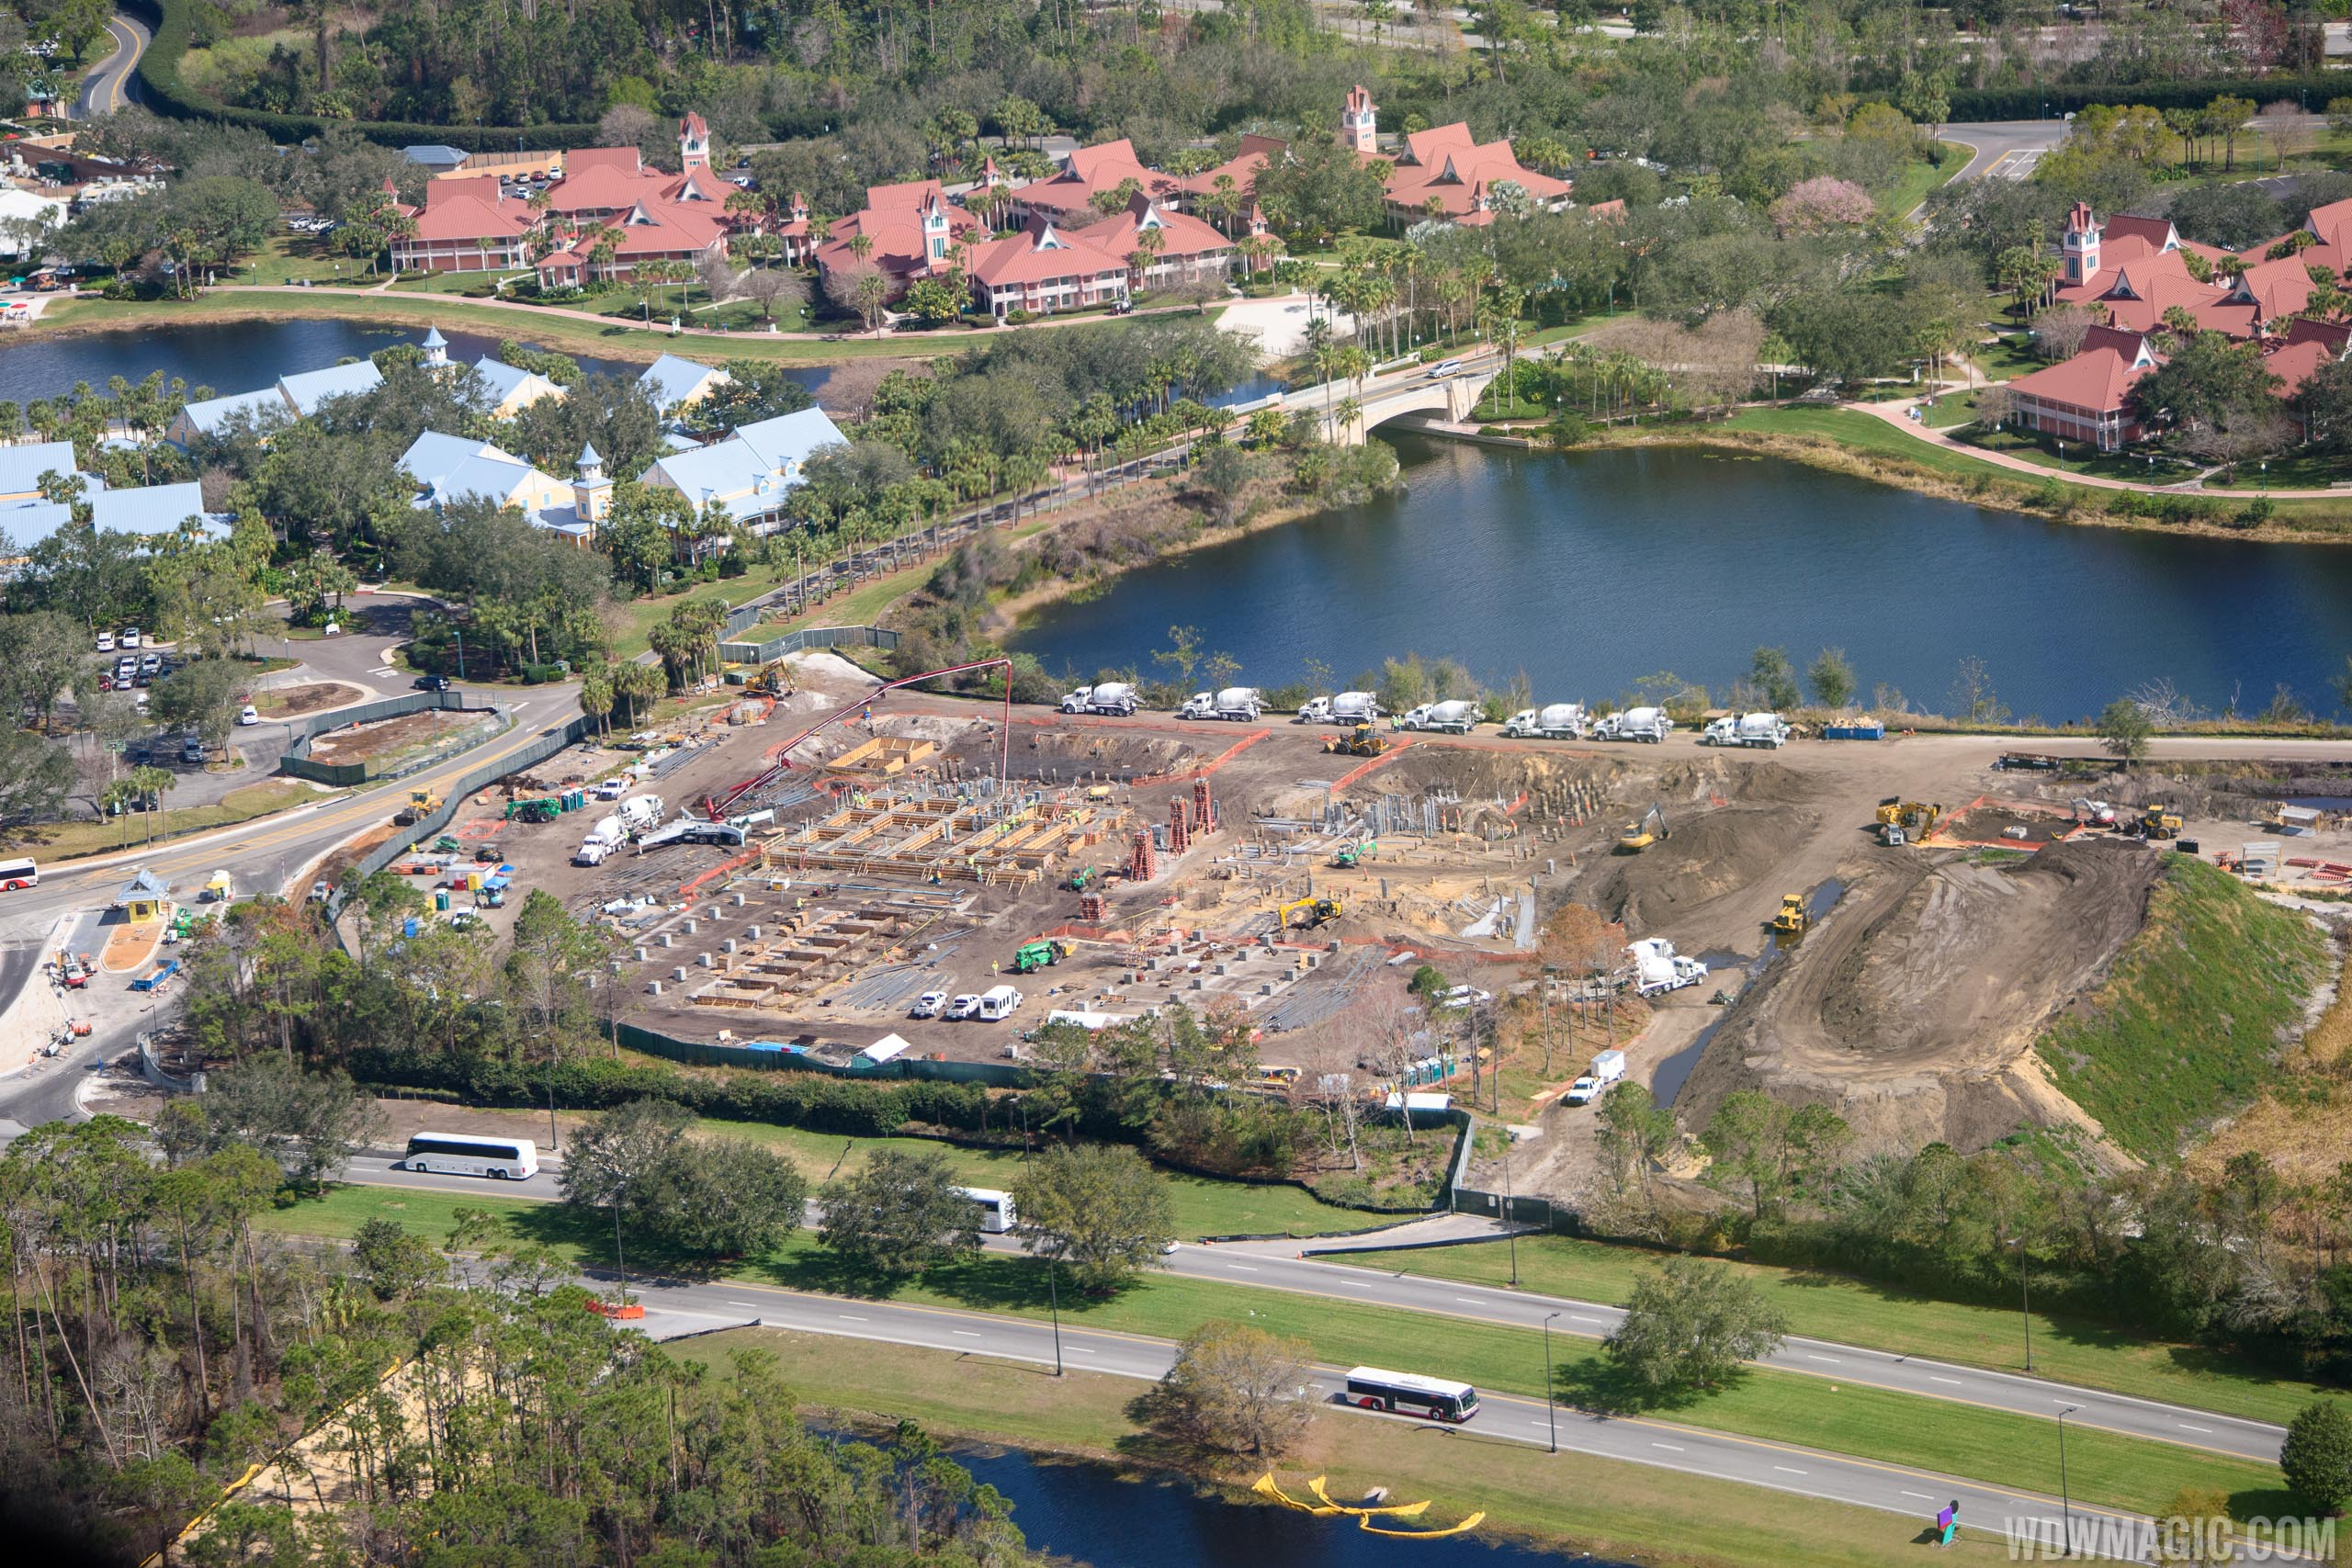 Disney Skyliner station at Caribbean Beach Resort construction